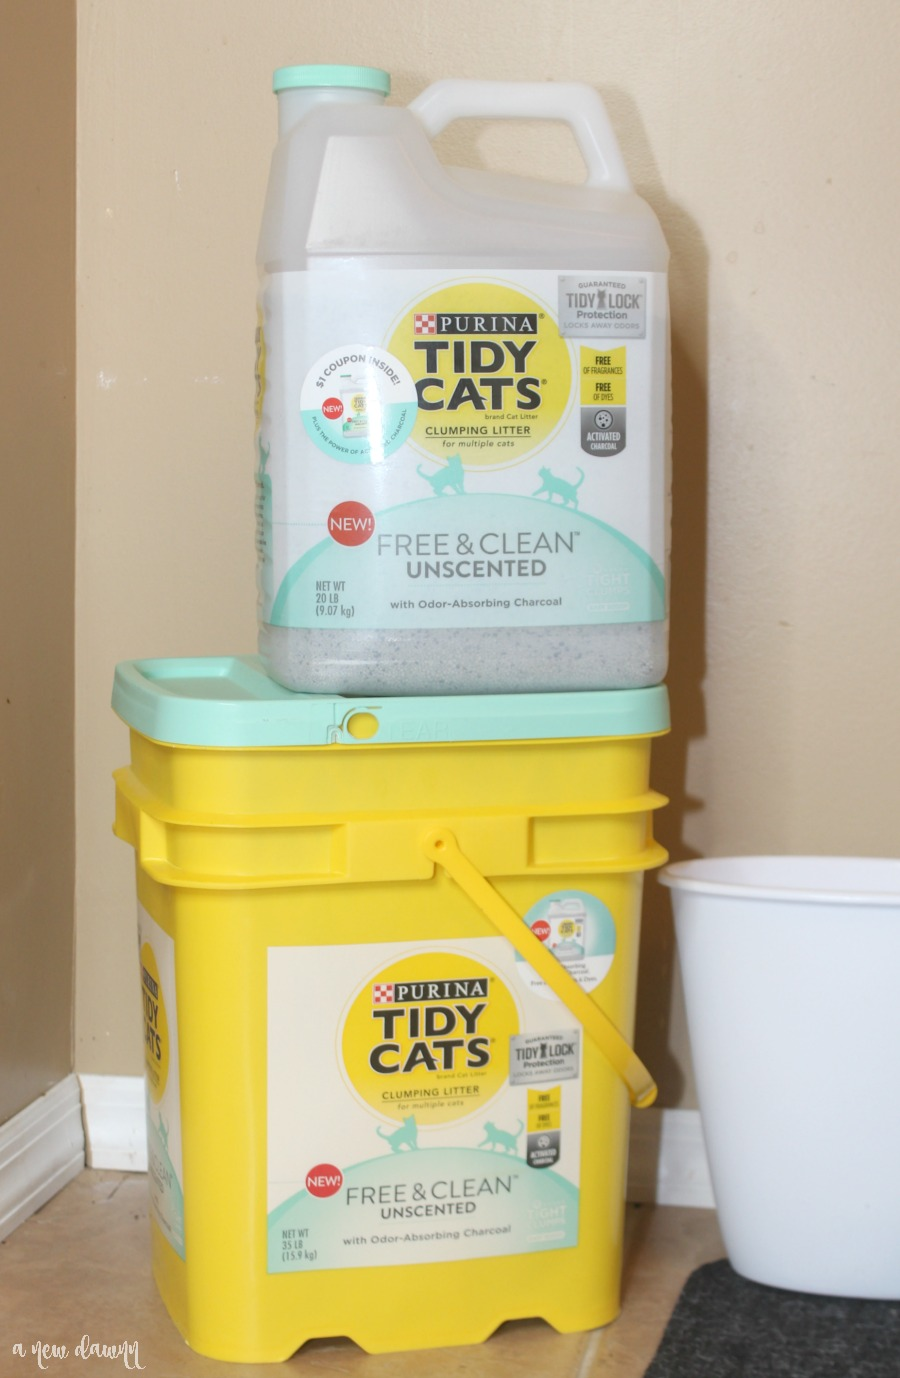 7 Tips to Keep Your Home Allergen Free for Humans & Pets